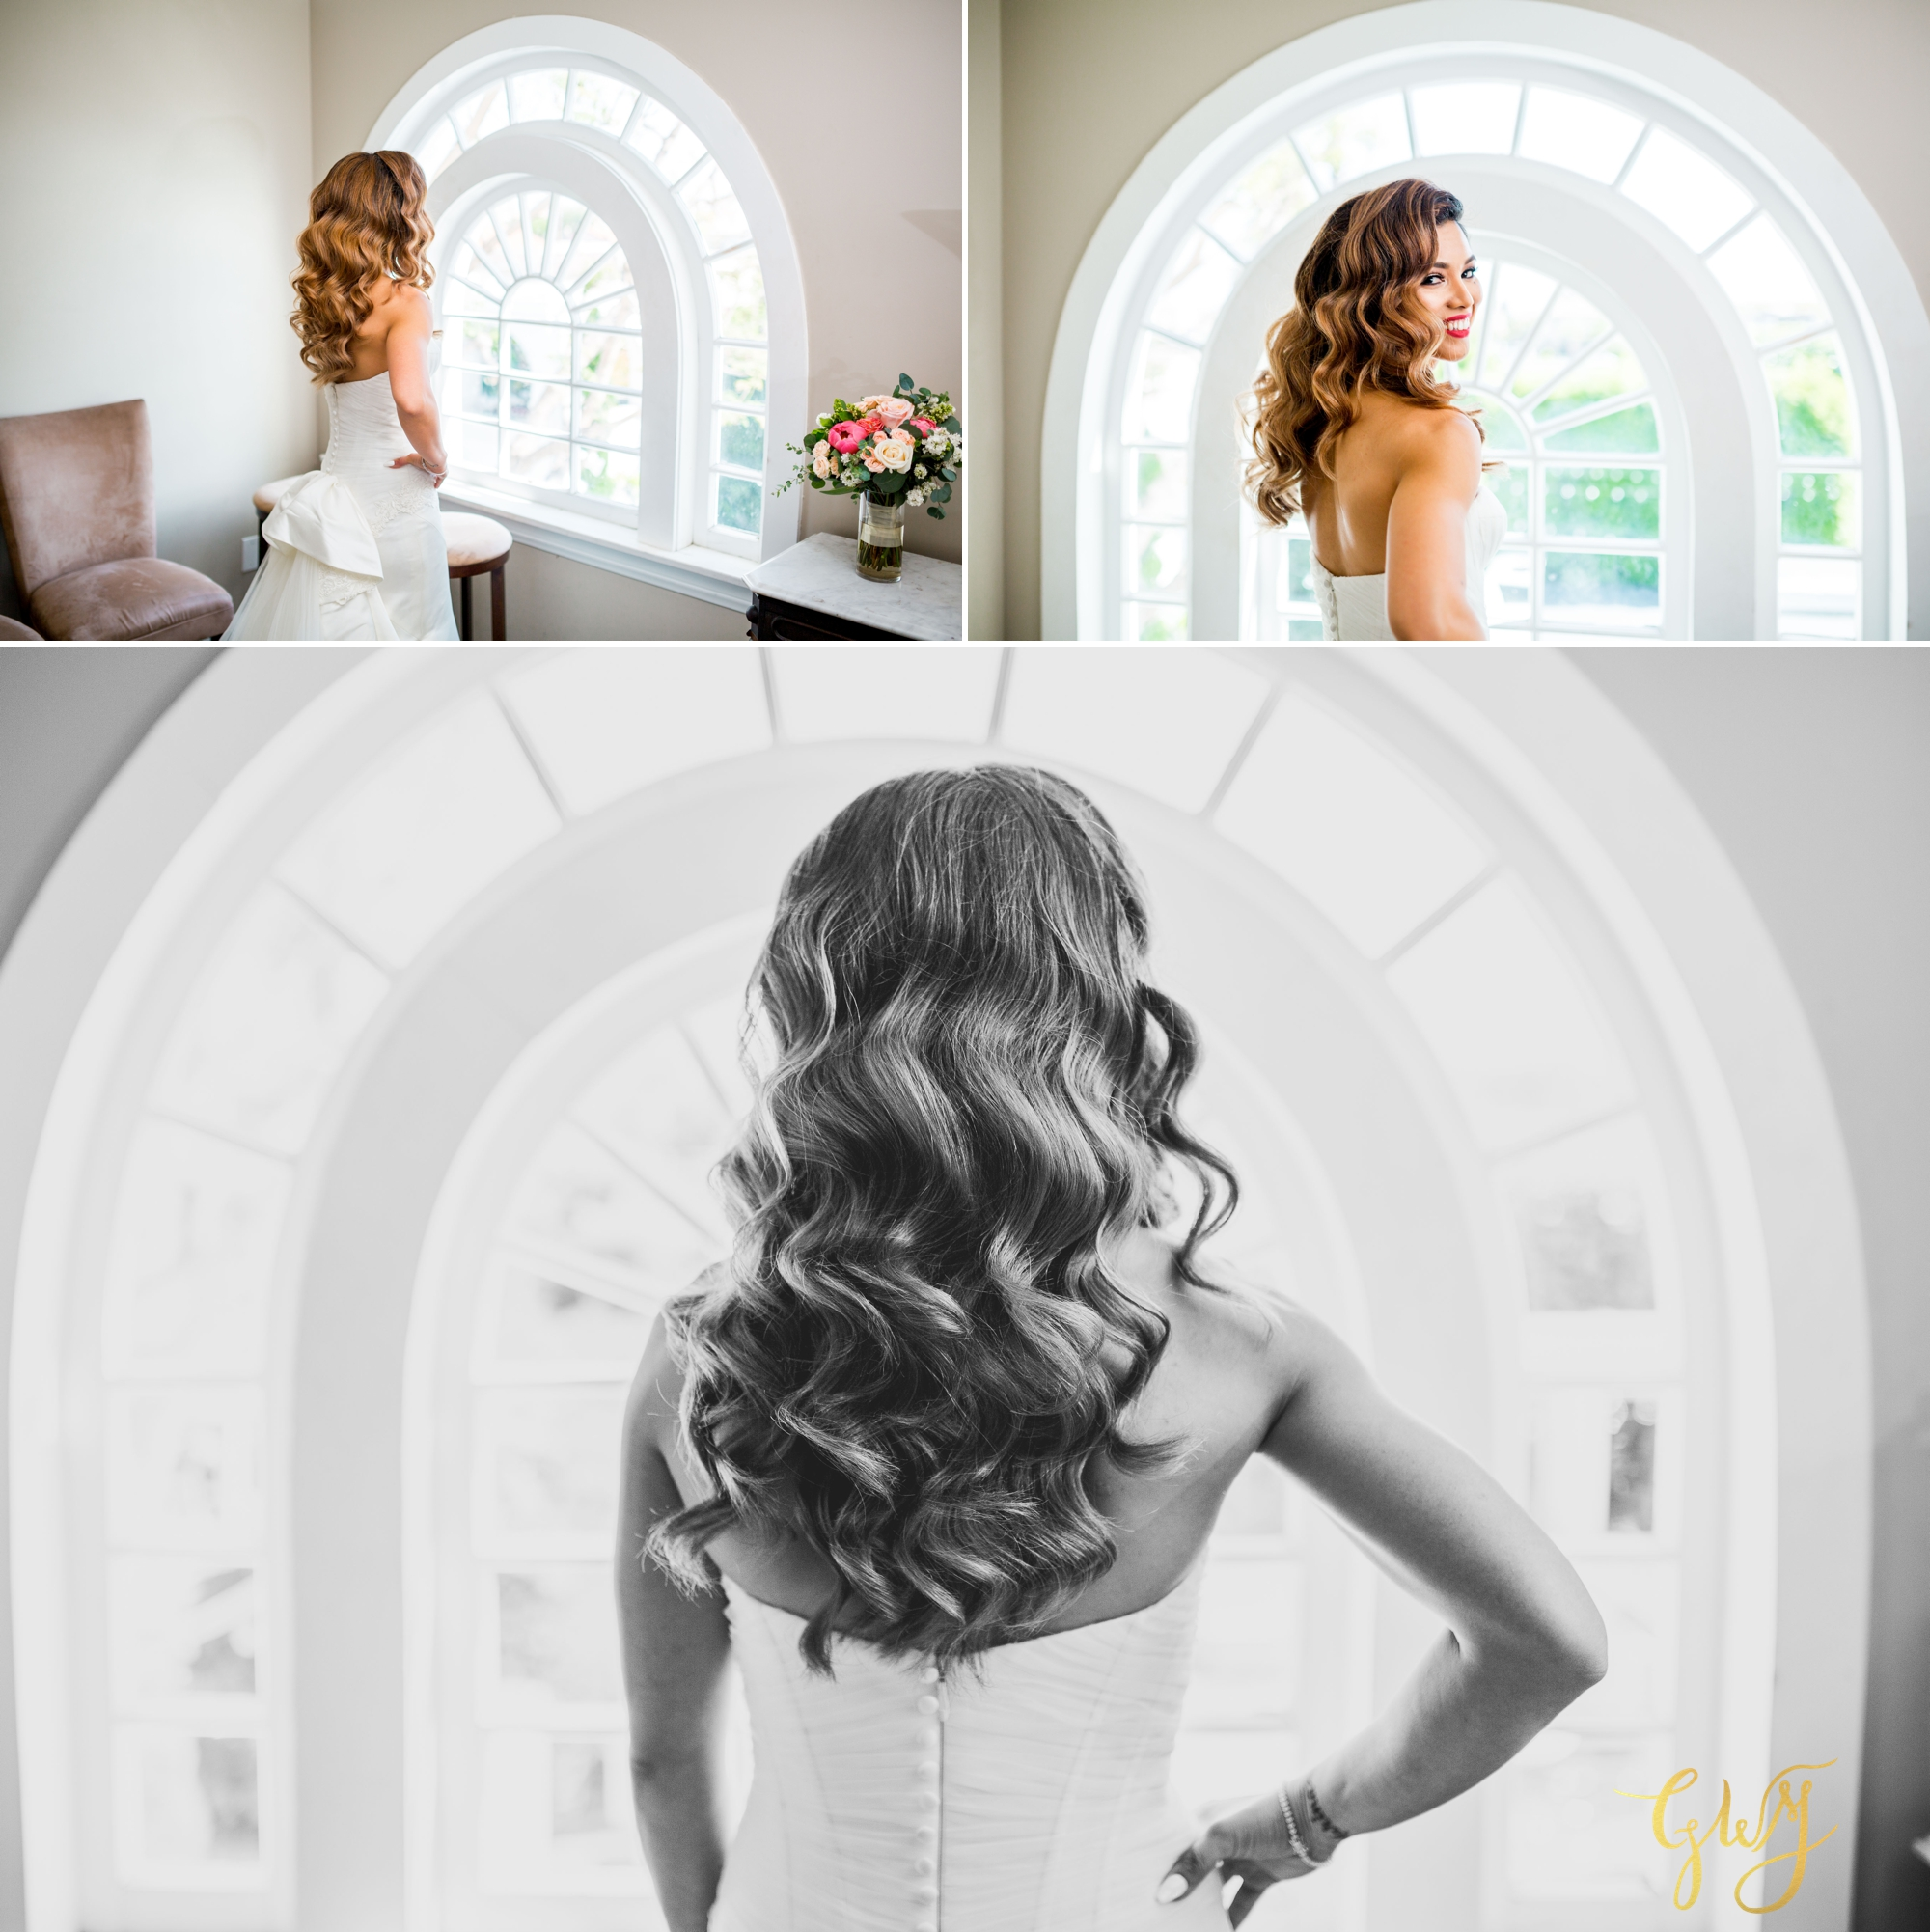 Andy + Caselyn's White House Event Center Orange County Spring Wedding by Glass Woods Media 10.jpg